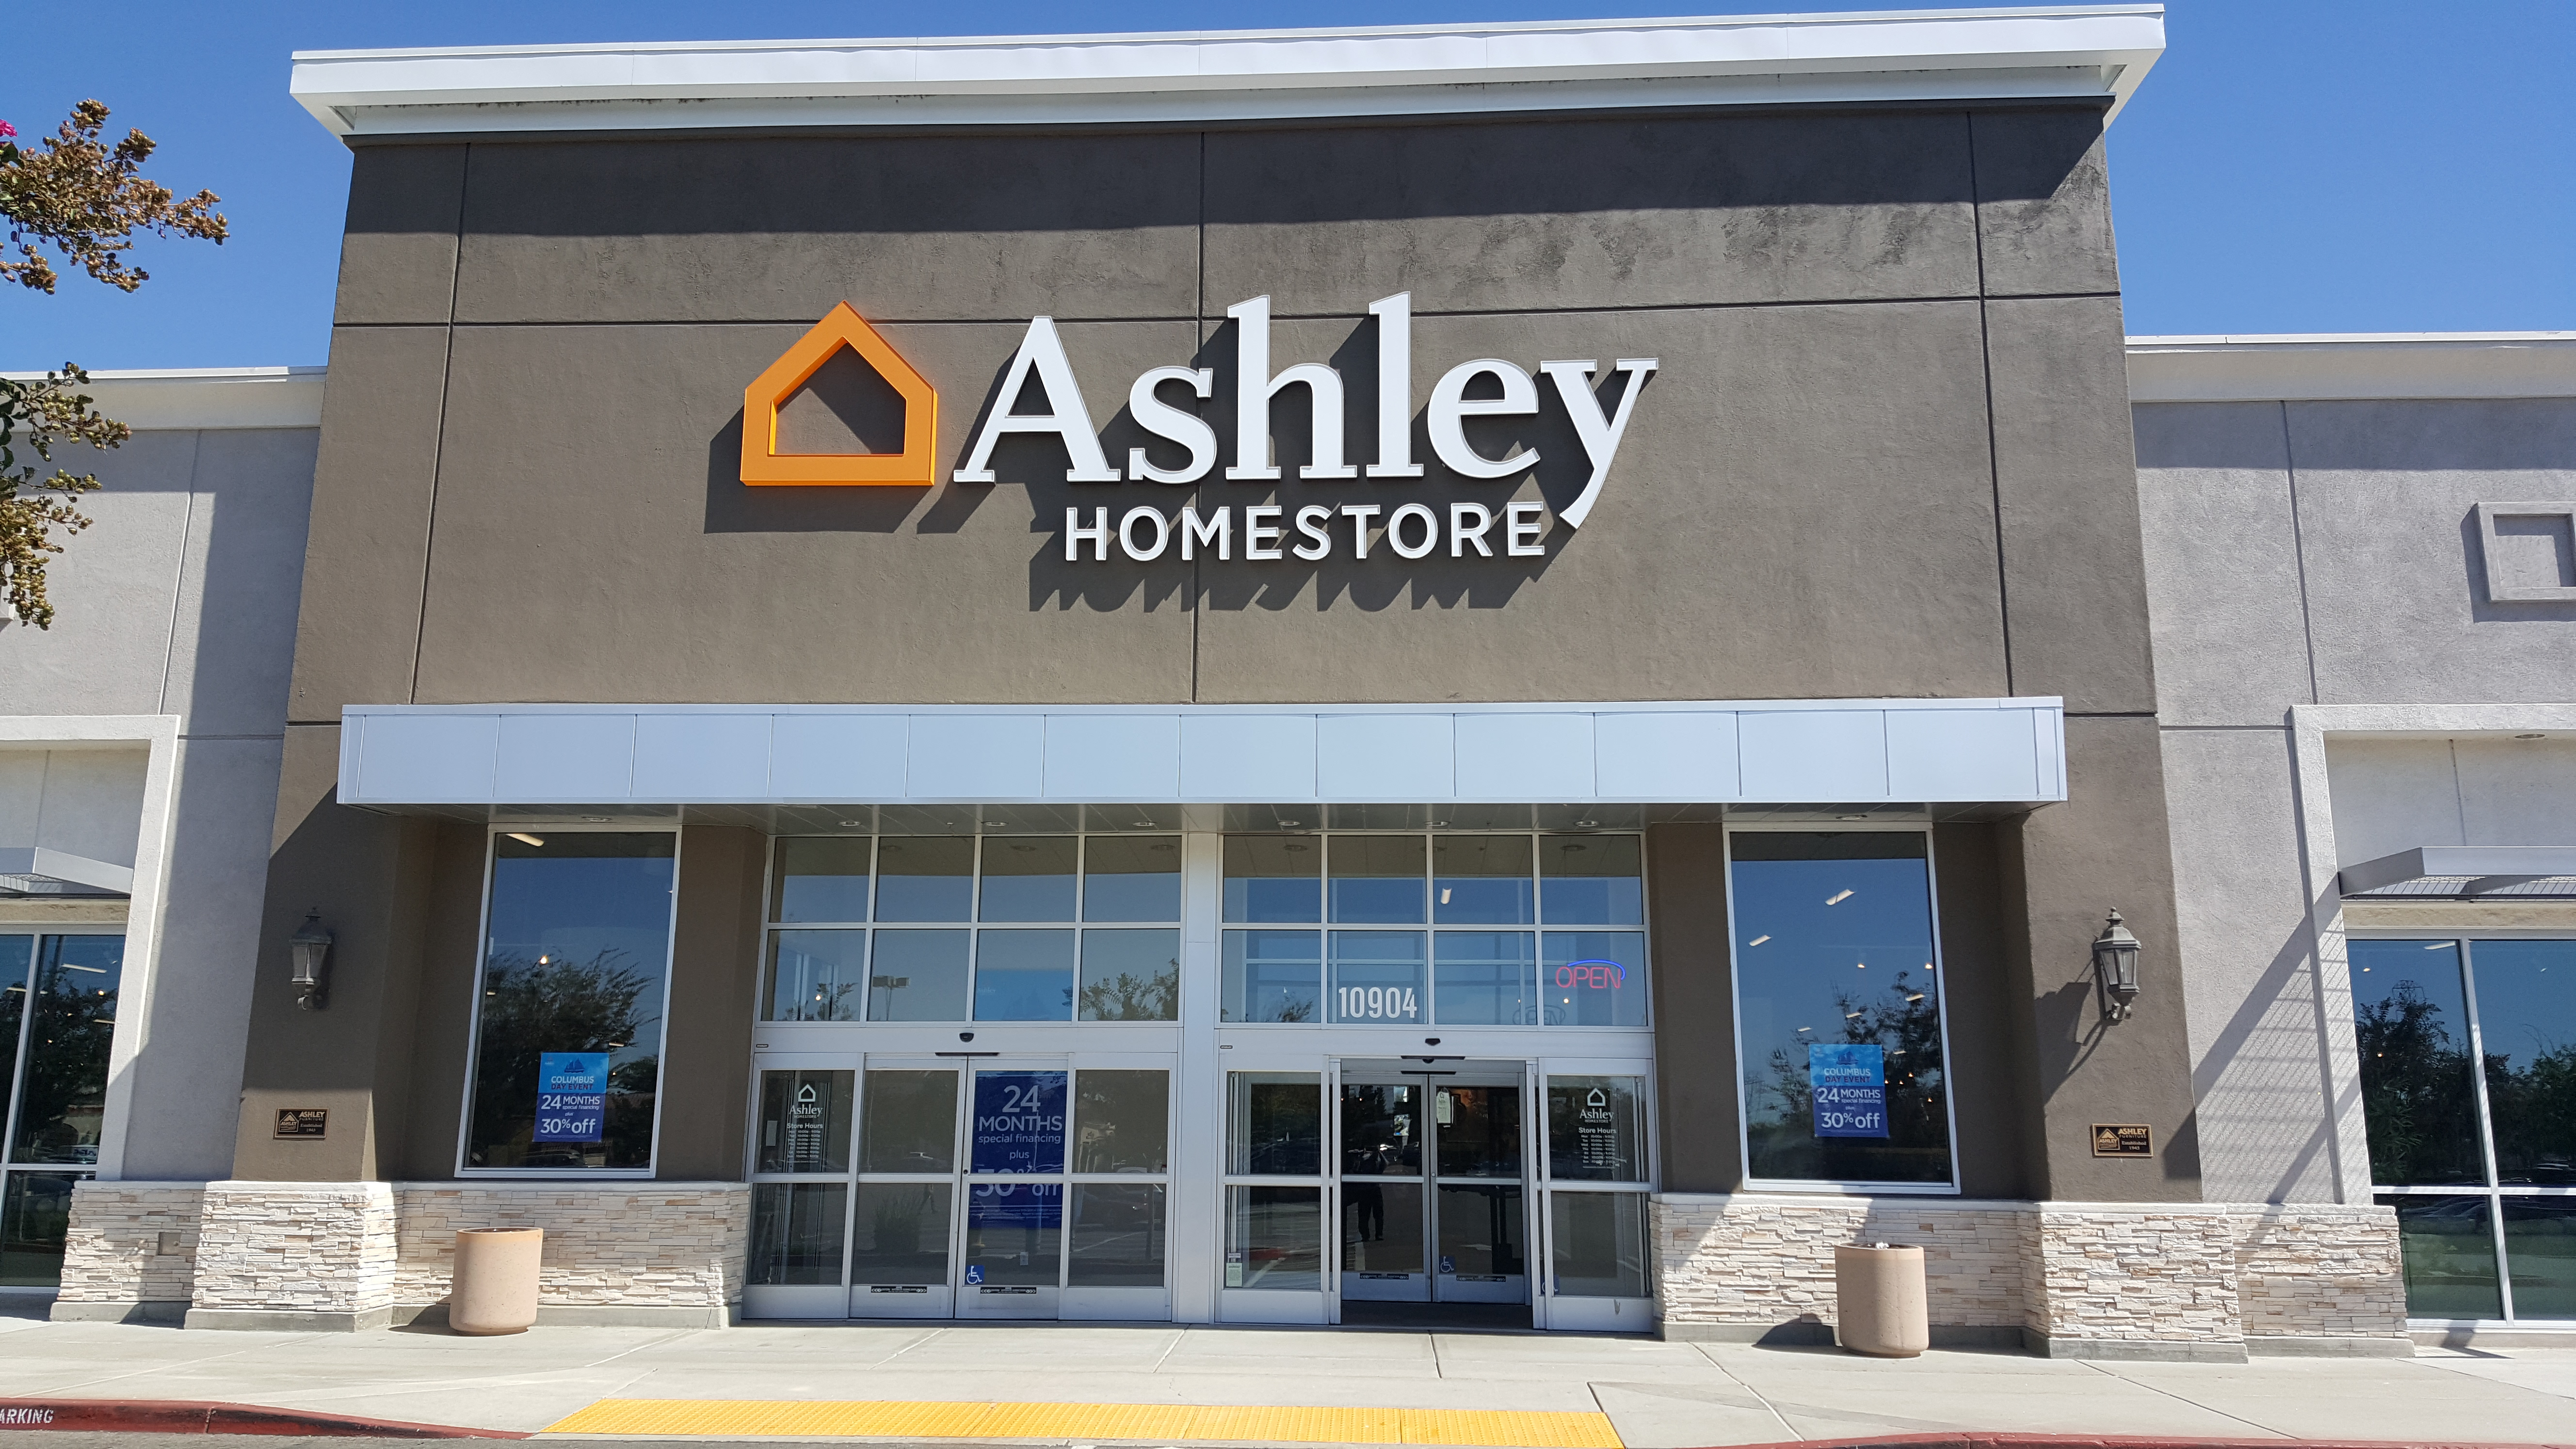 Magnificent Furniture And Mattress Store In Stockton Ca Ashley Pabps2019 Chair Design Images Pabps2019Com